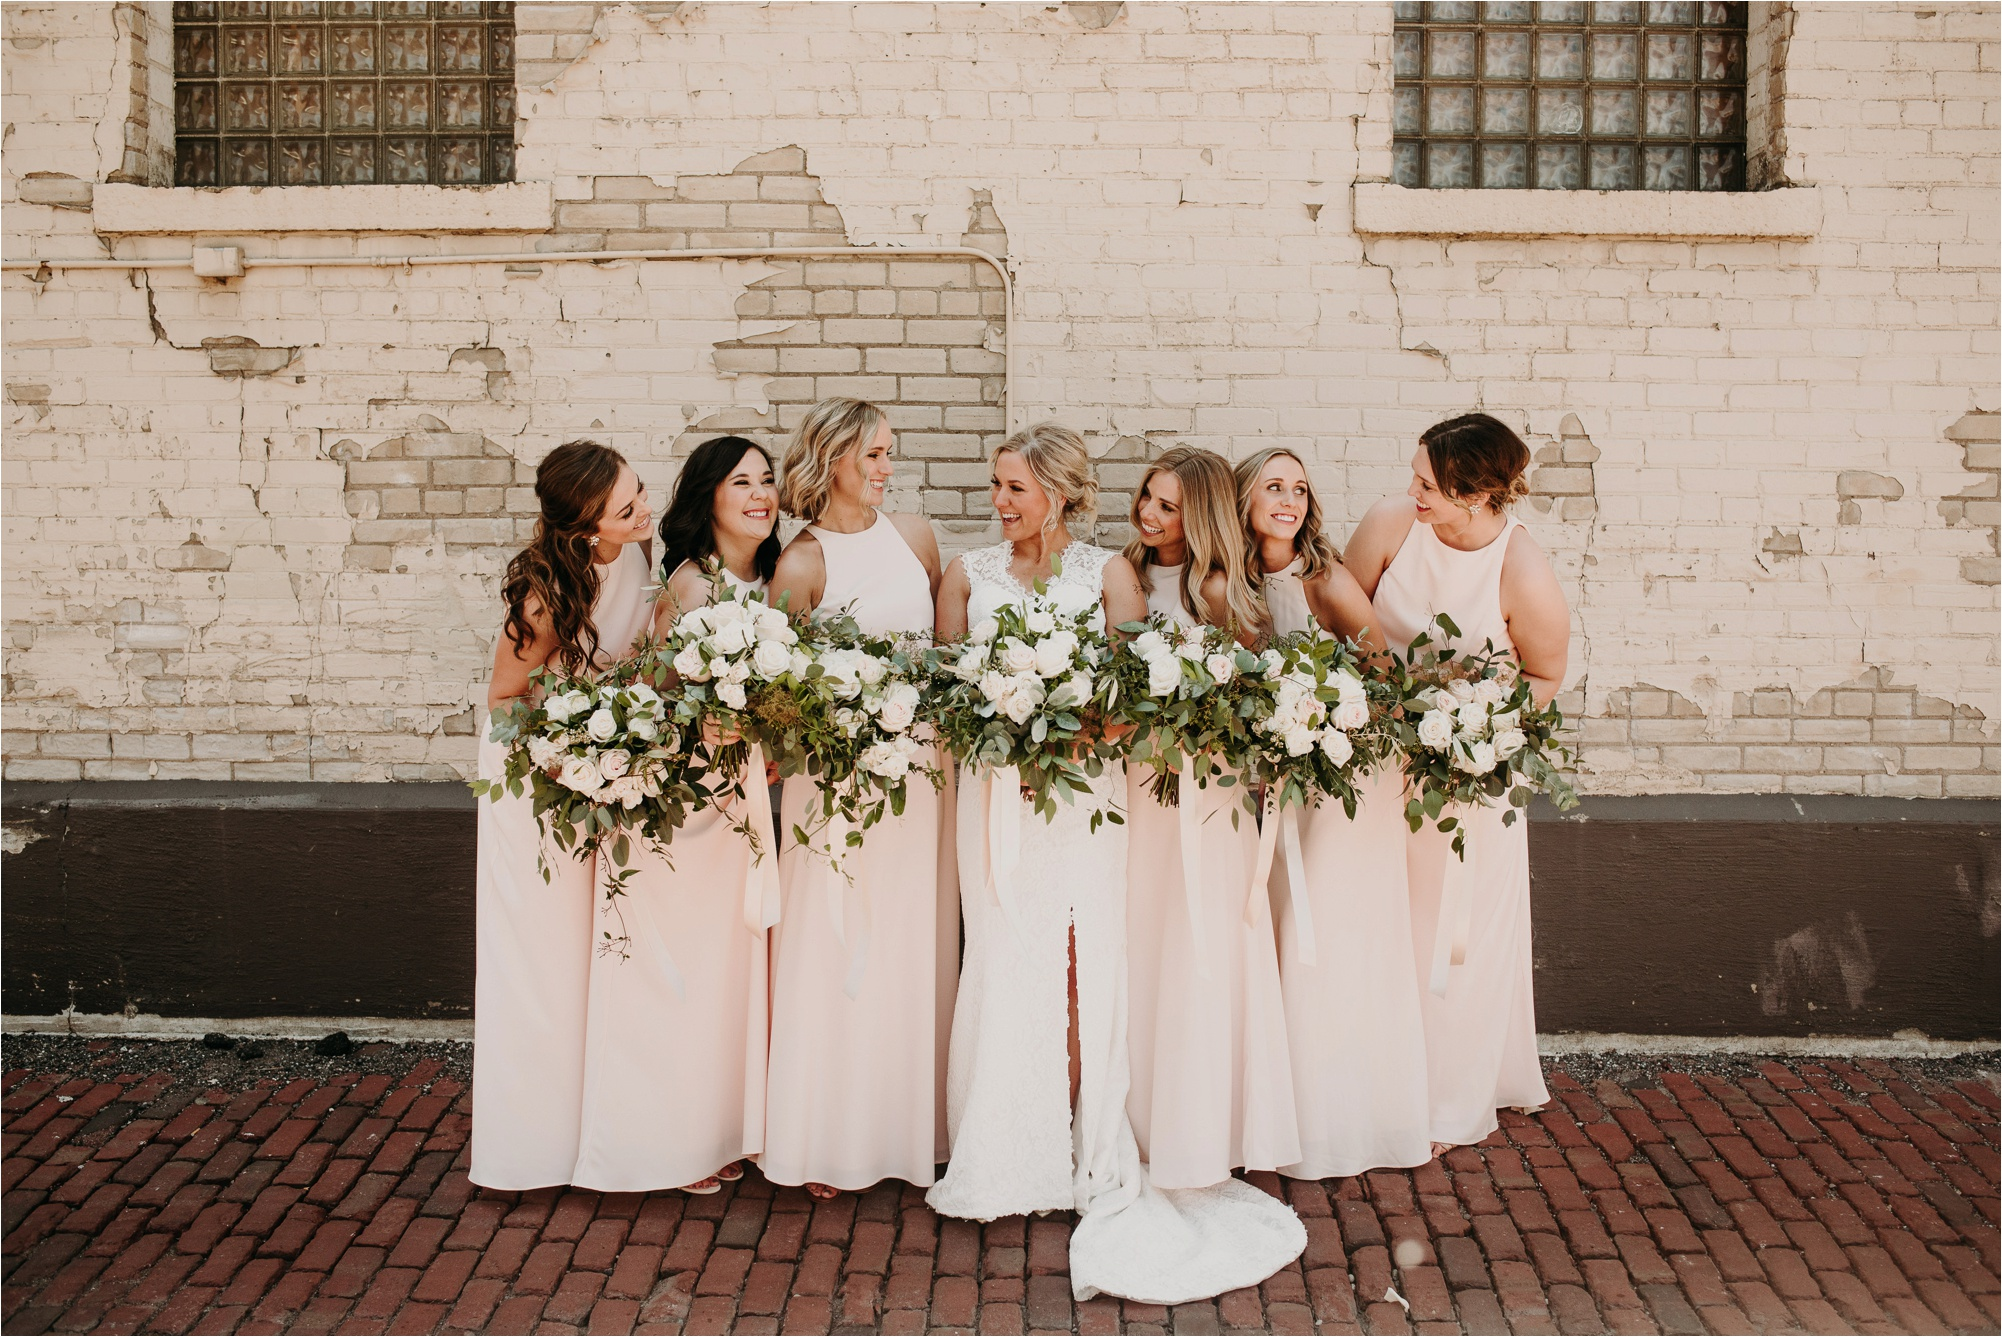 north loop minneapolis minnesota bridal party wedding party photos photographer